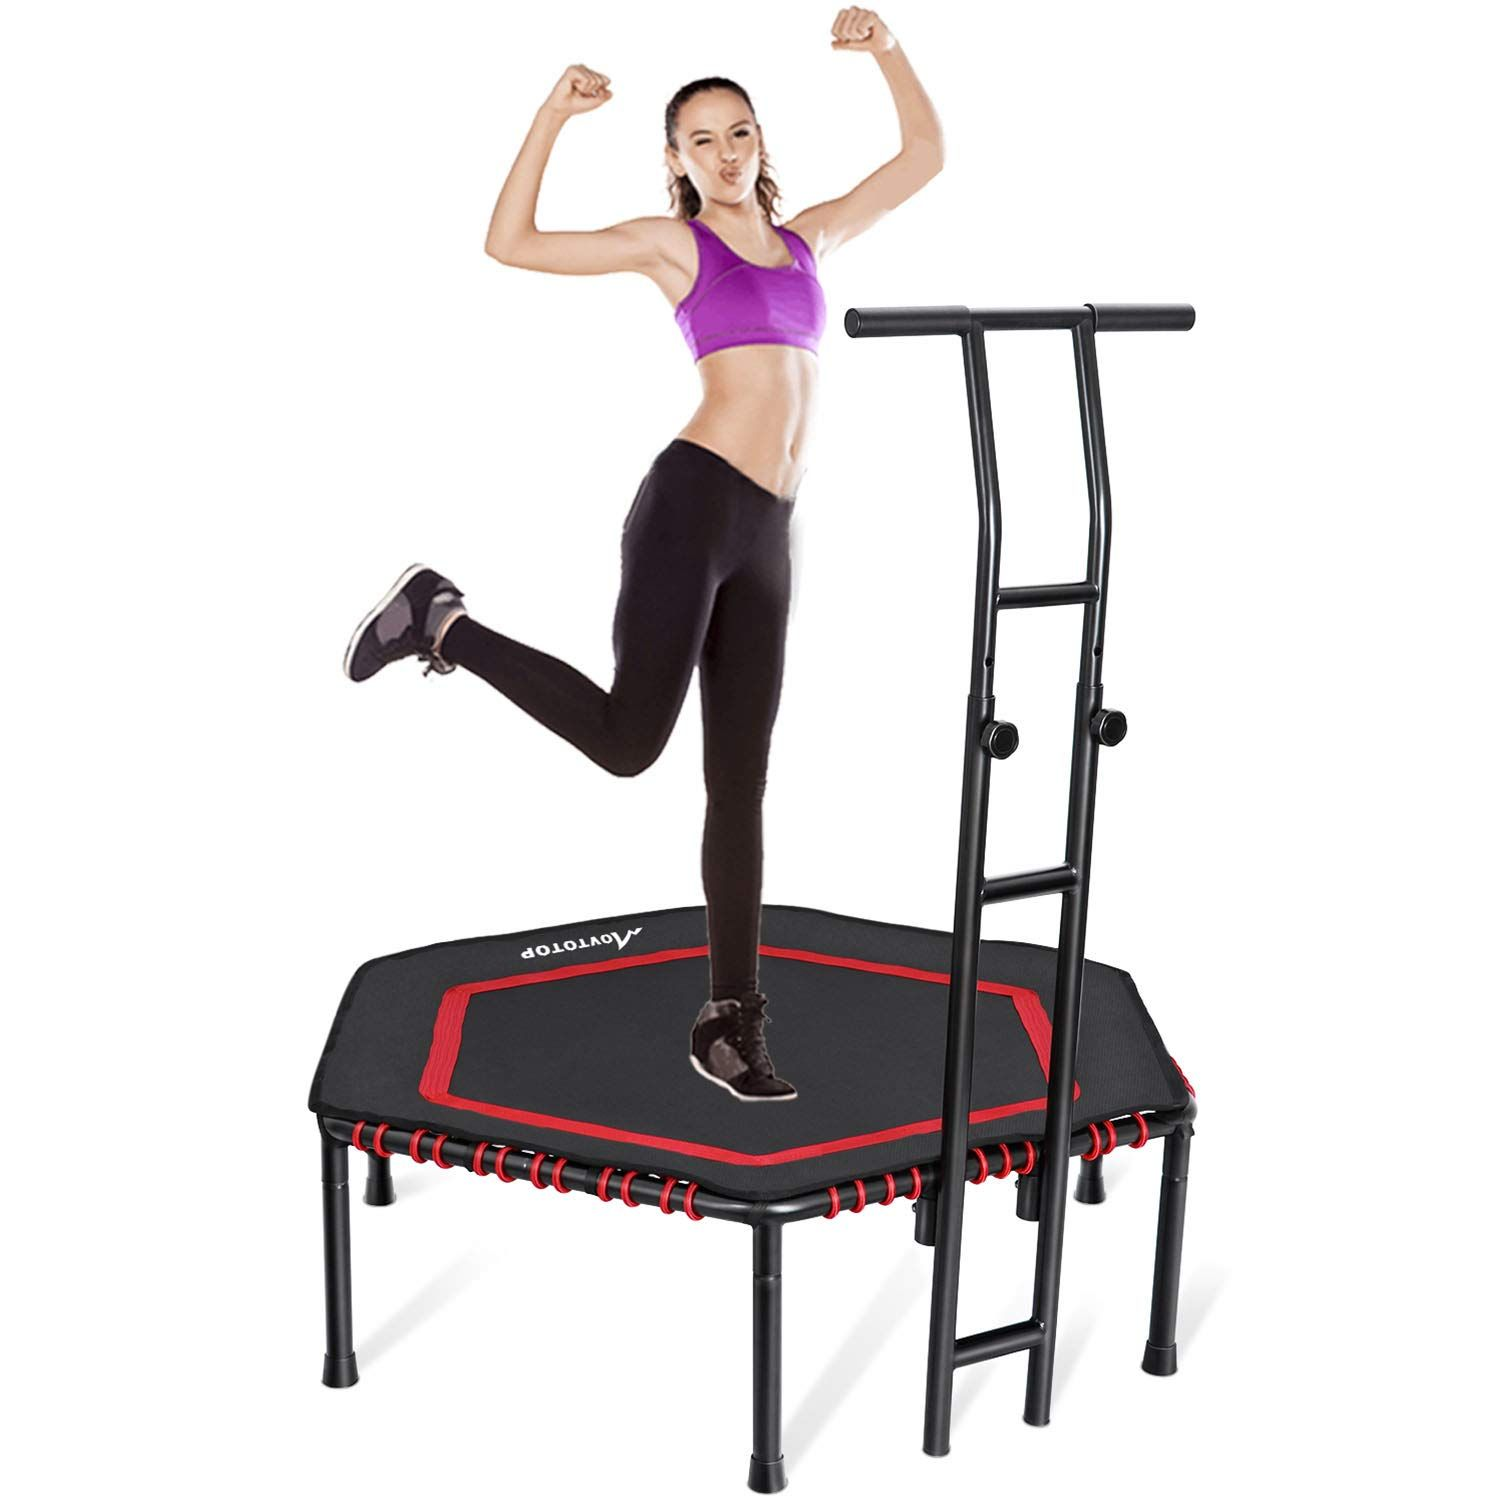 Movtotop indoor fitness trampoline folding 48 inch with